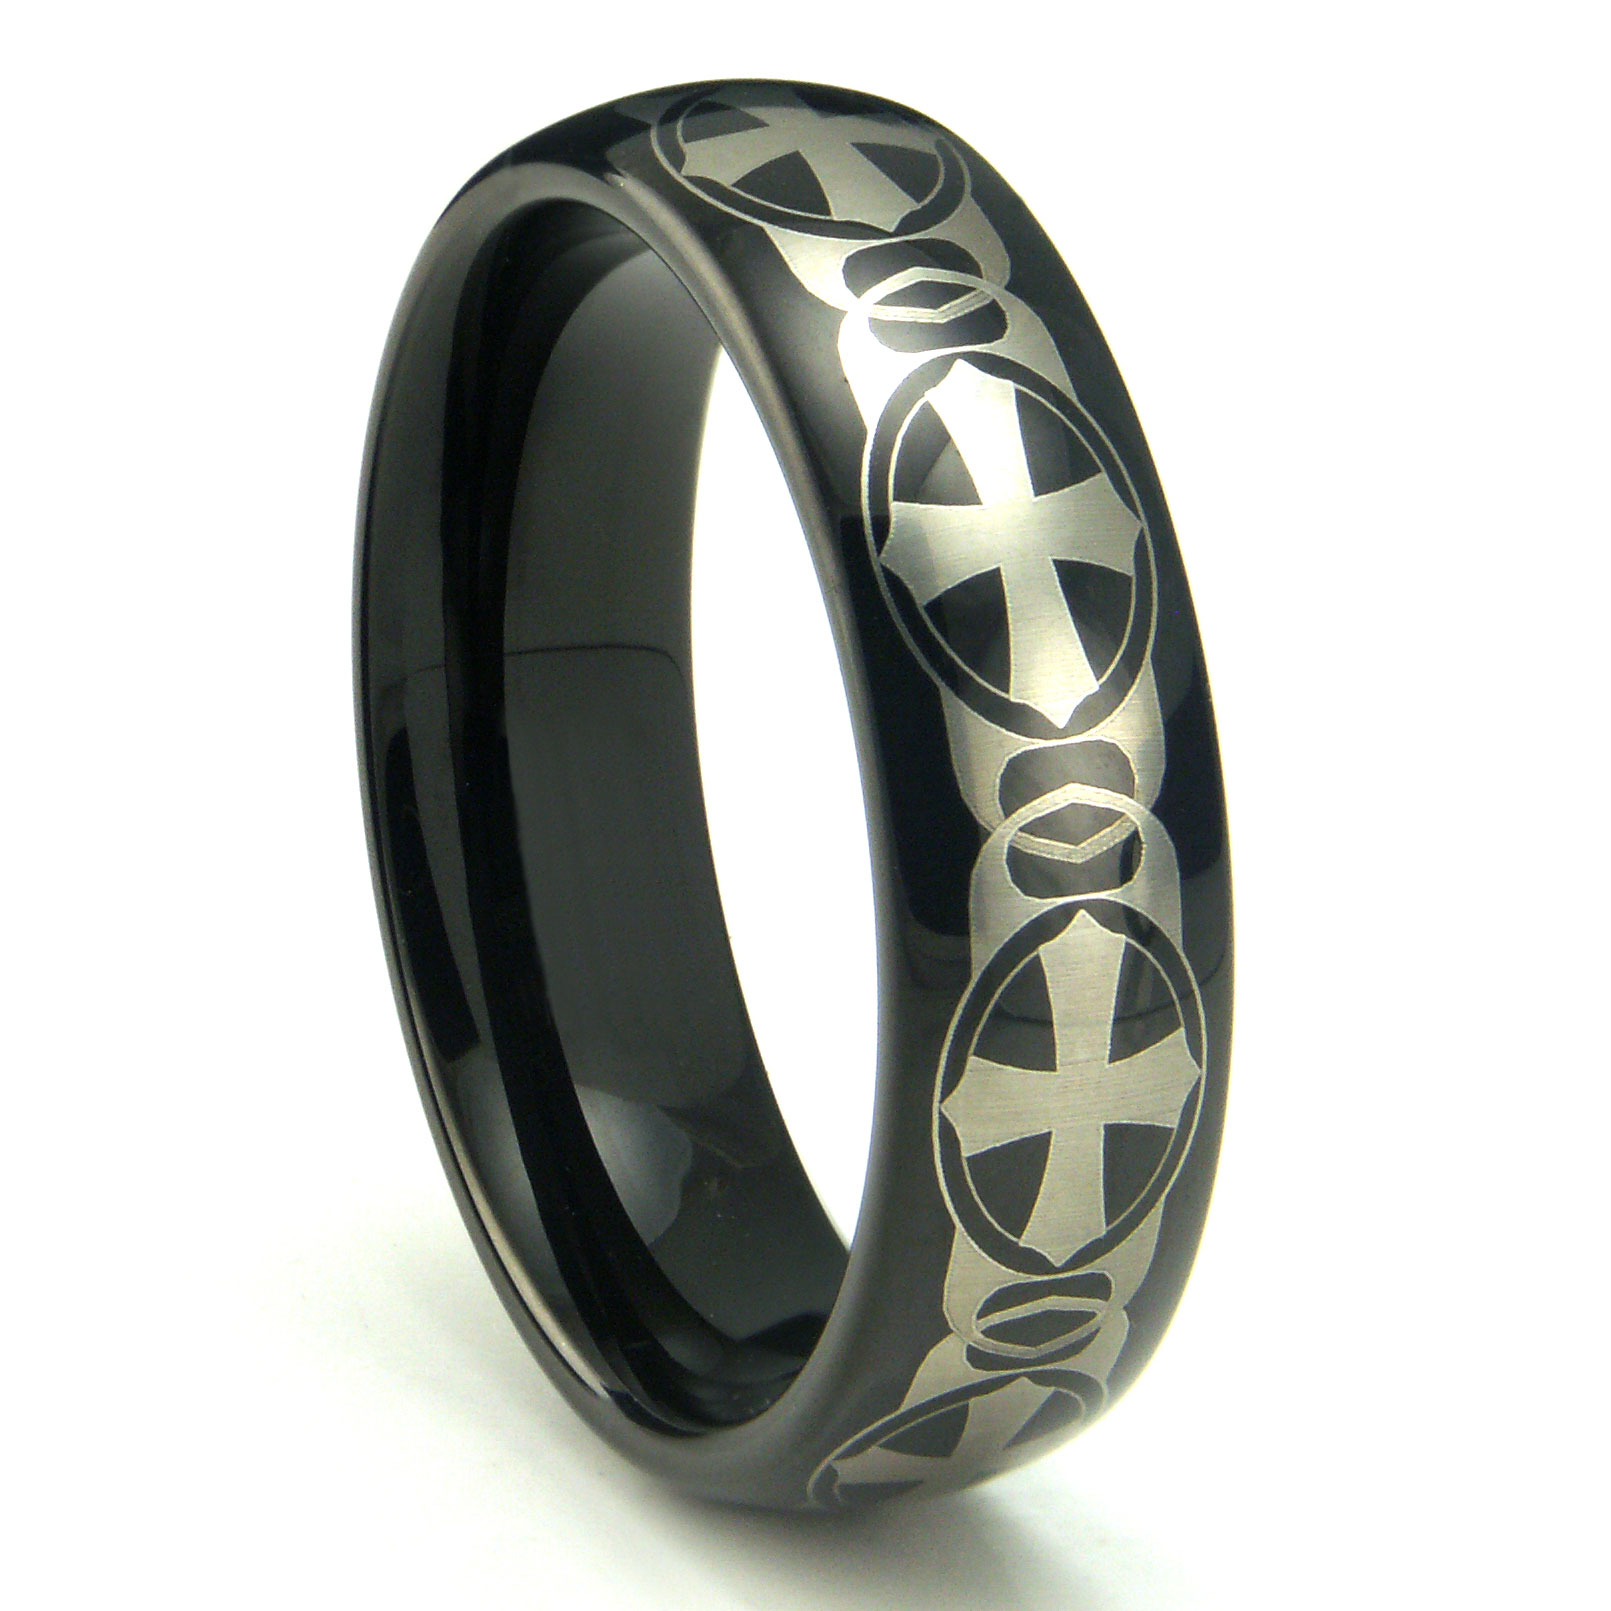 It is just a picture of Black Tungsten Carbide Laser Engraved Celtic Cross Dome Wedding Band Ring